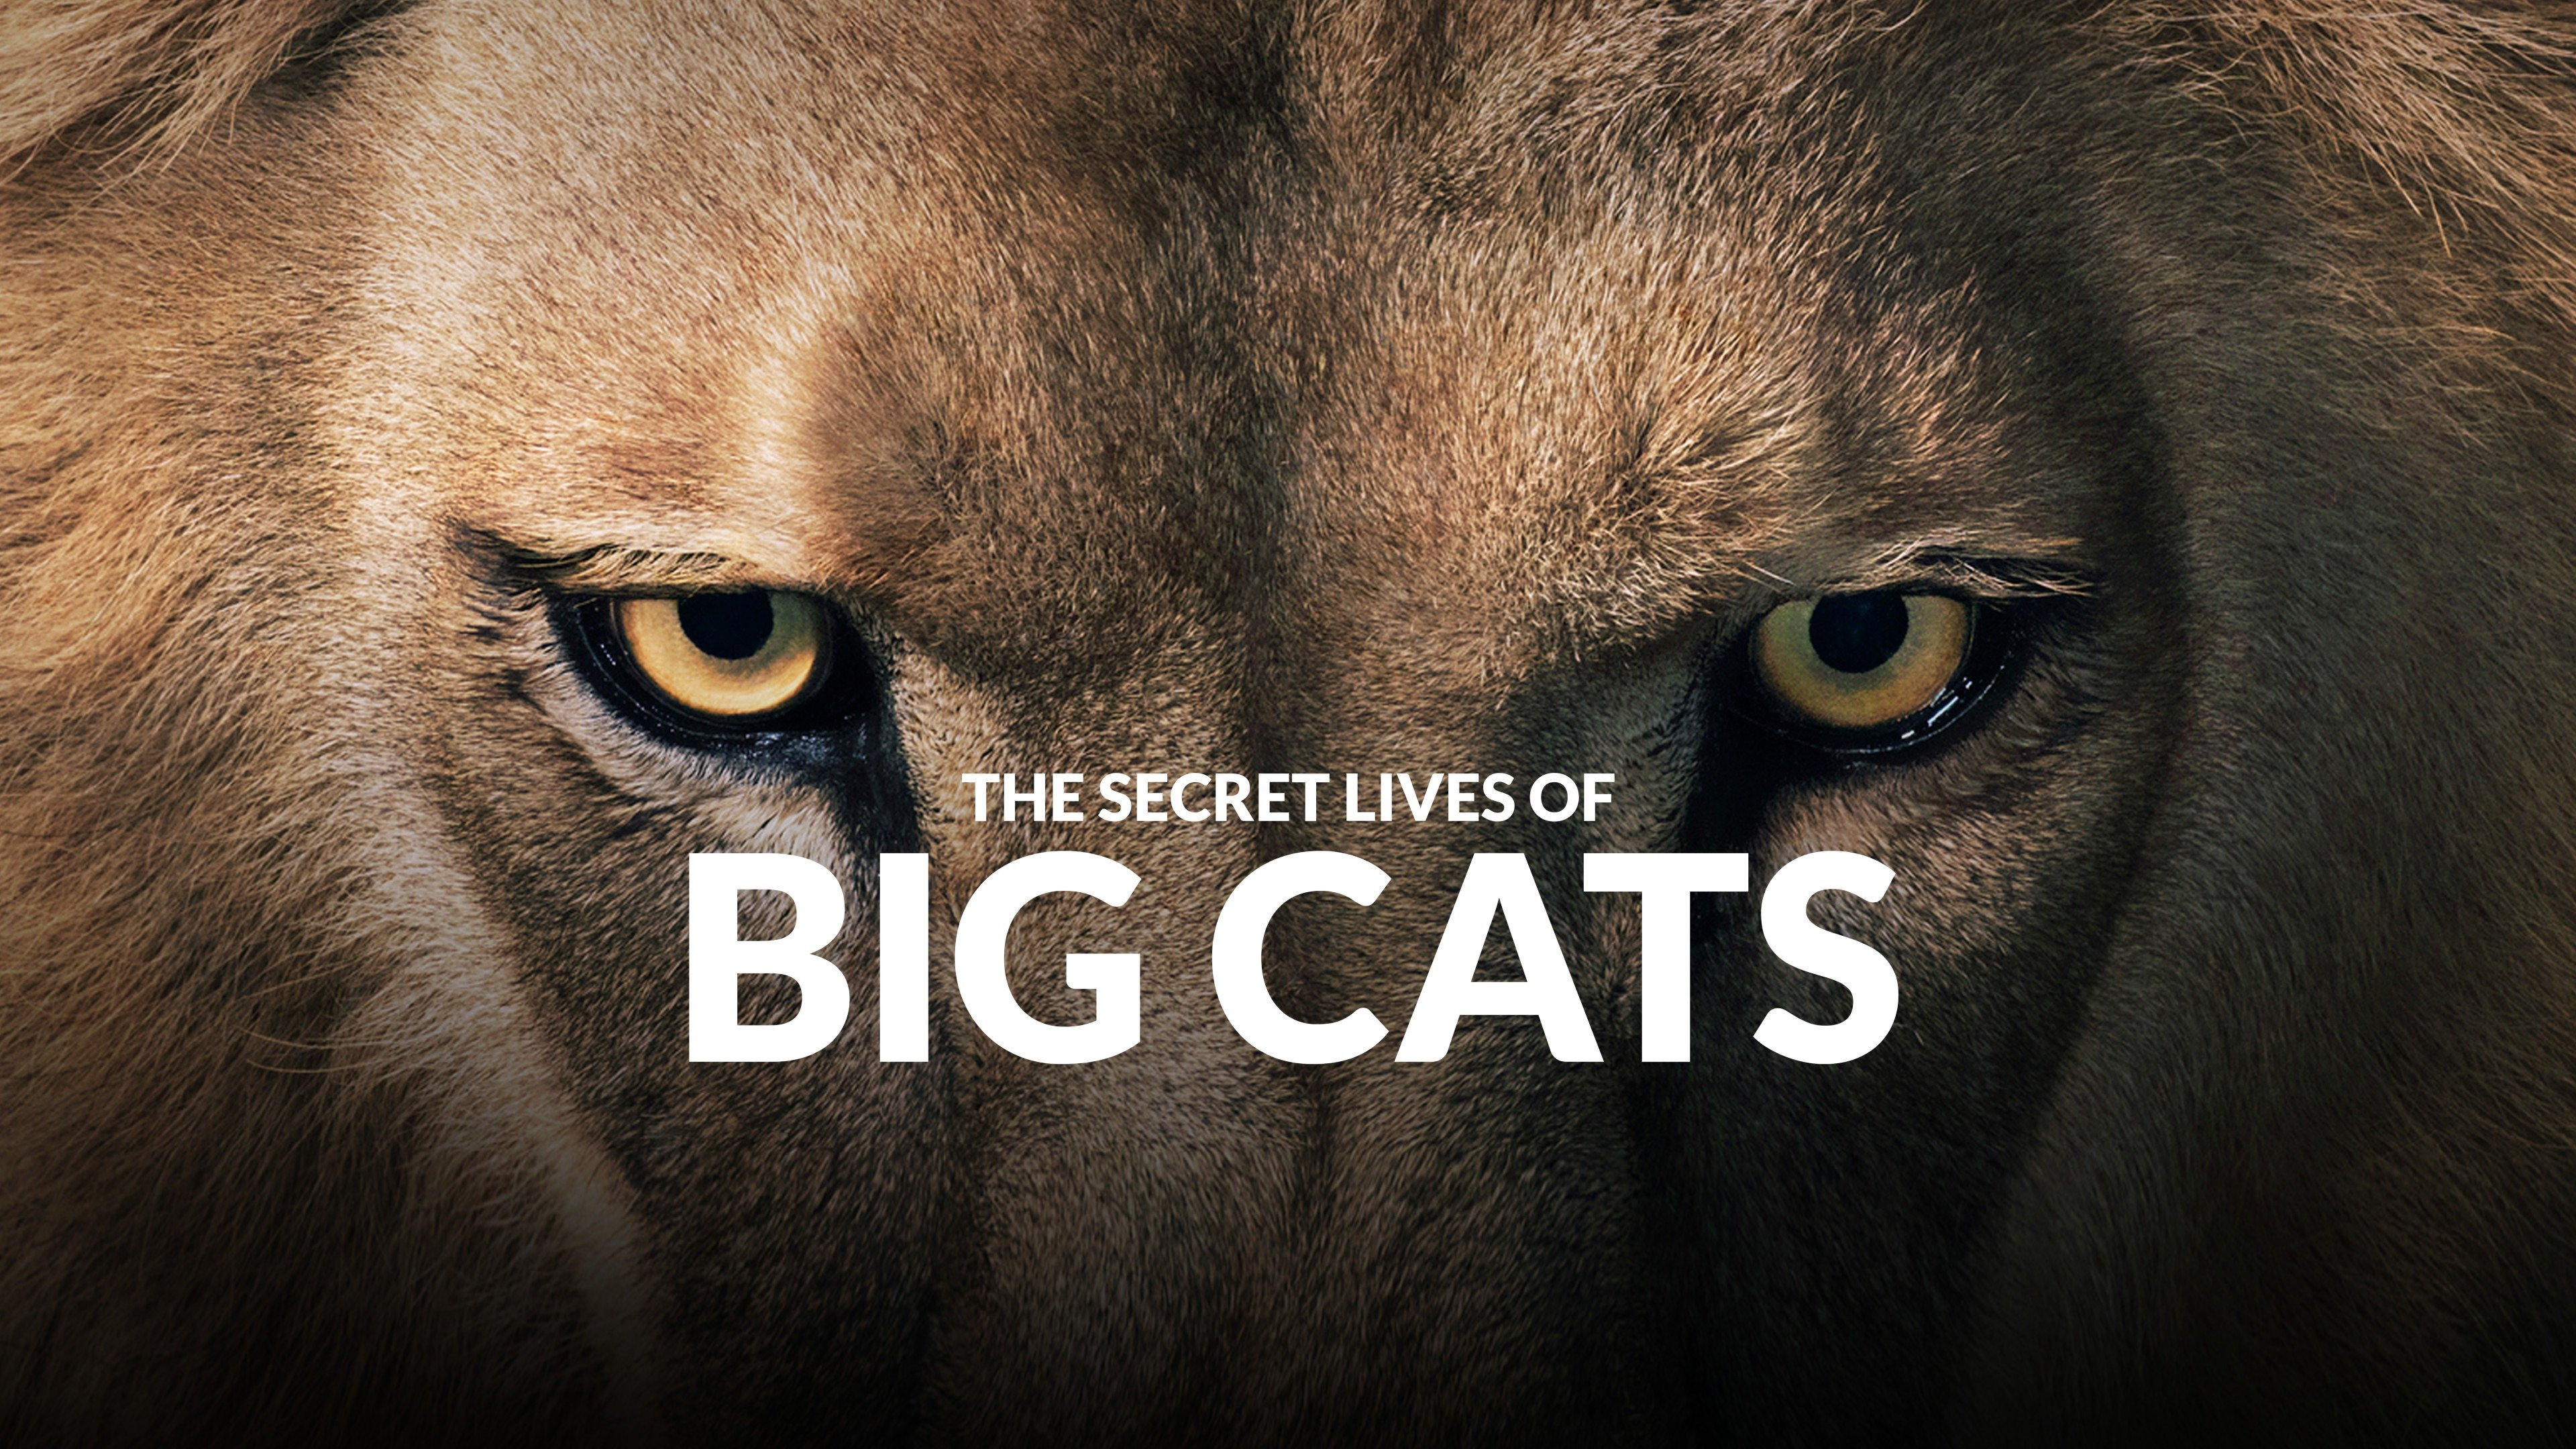 The Secret Lives of Big Cats